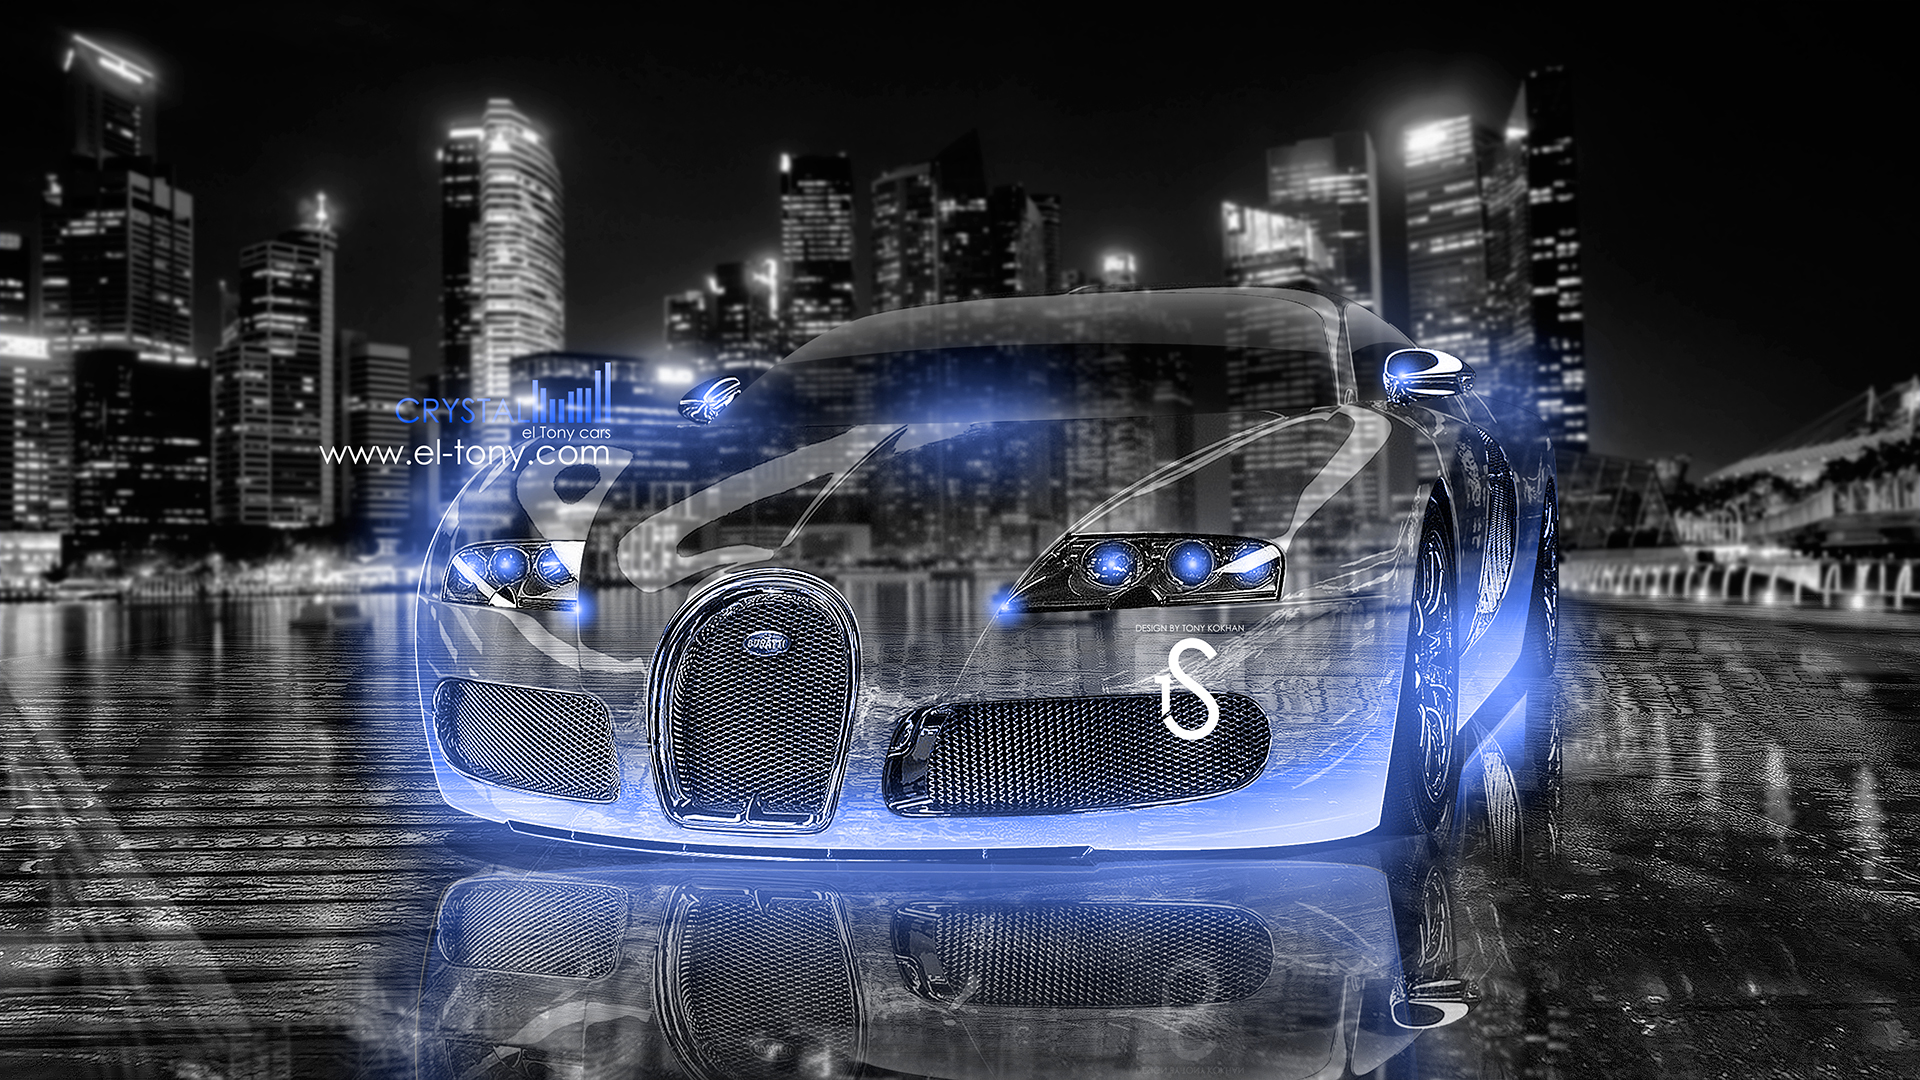 Merveilleux Bugatti Veyron Crystal City Car 2013 Dark Blue  ...